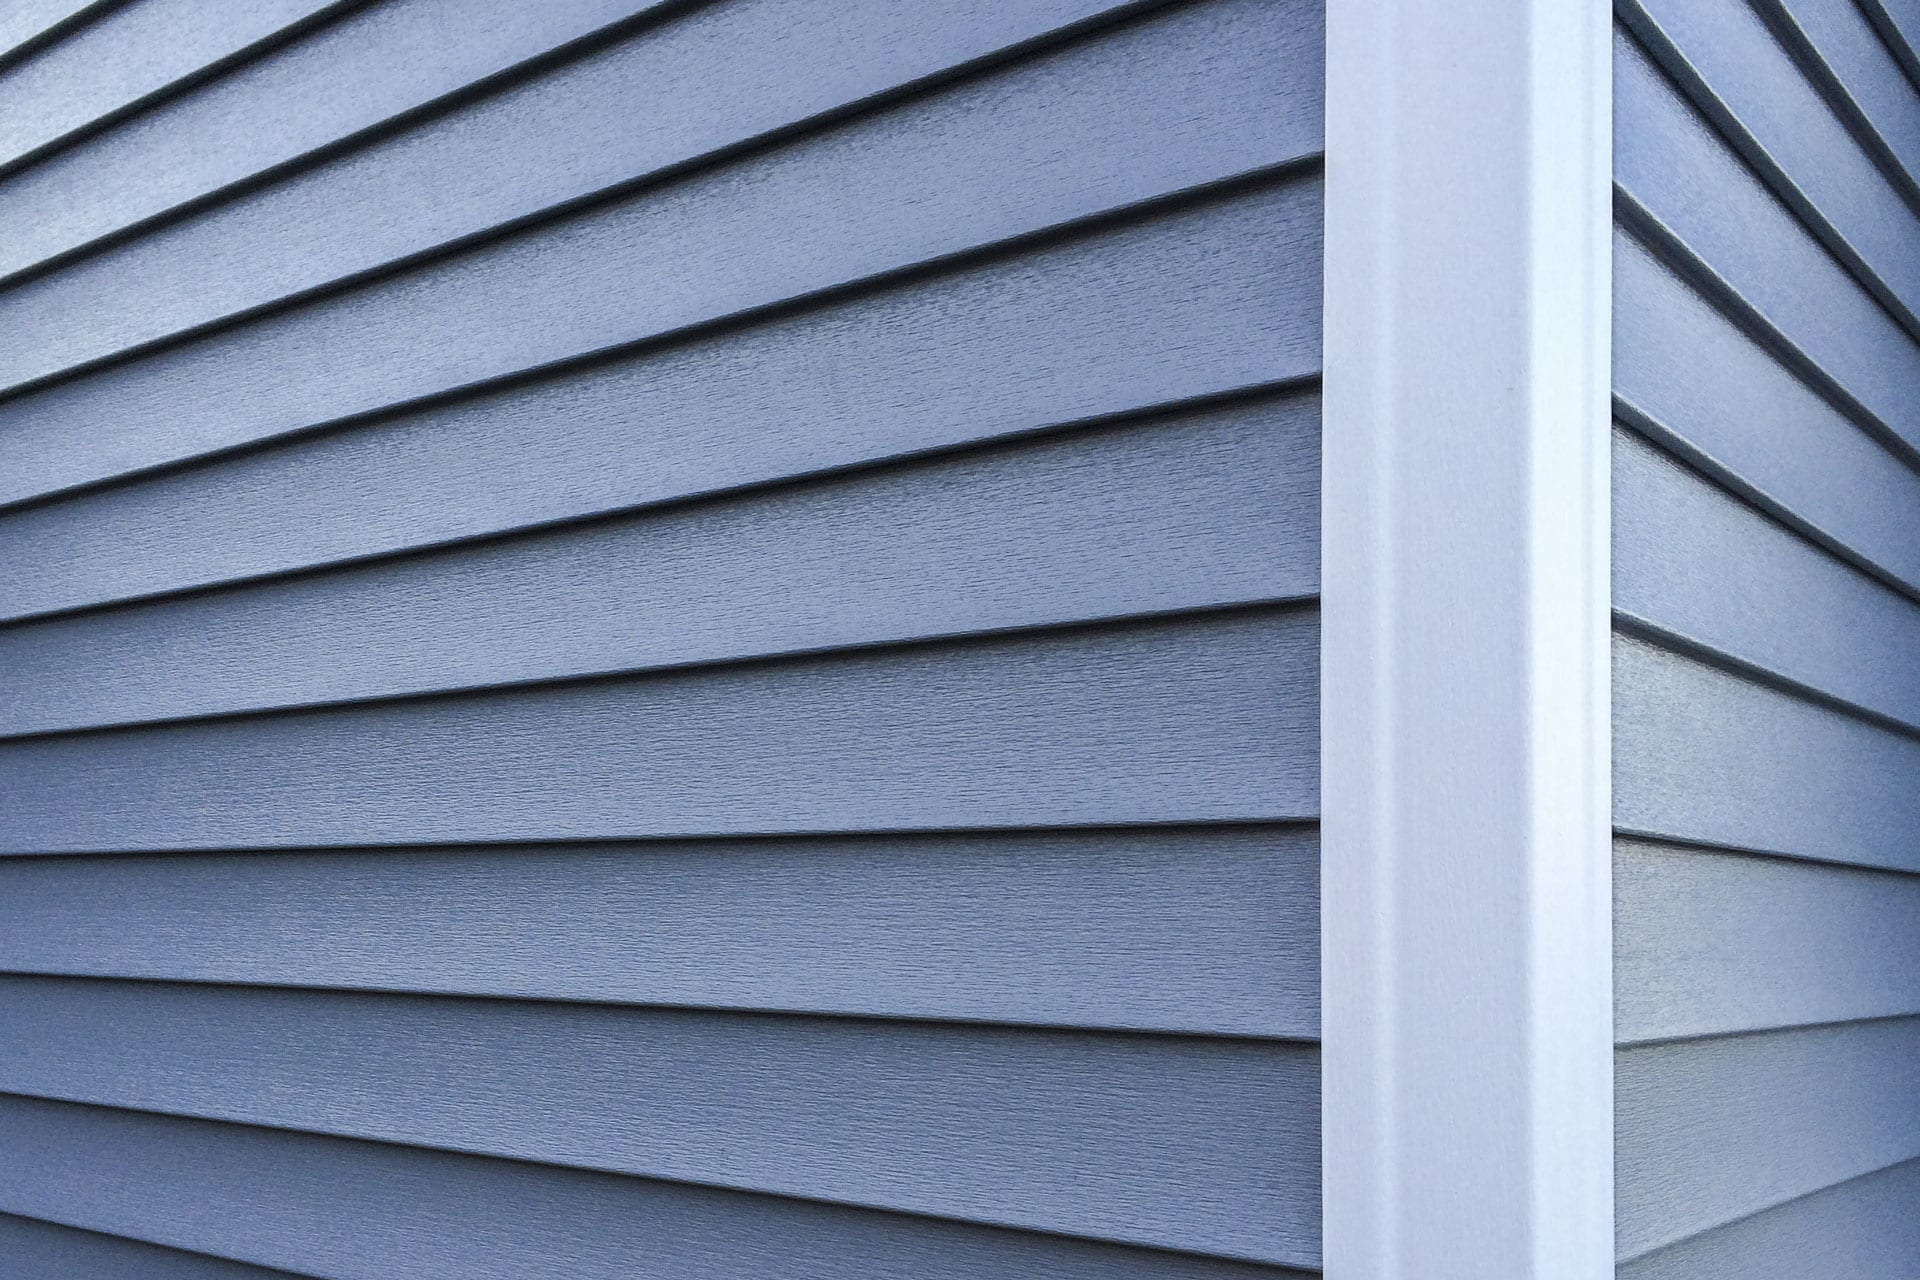 Lower Energy Bills with Insulated Vinyl Siding